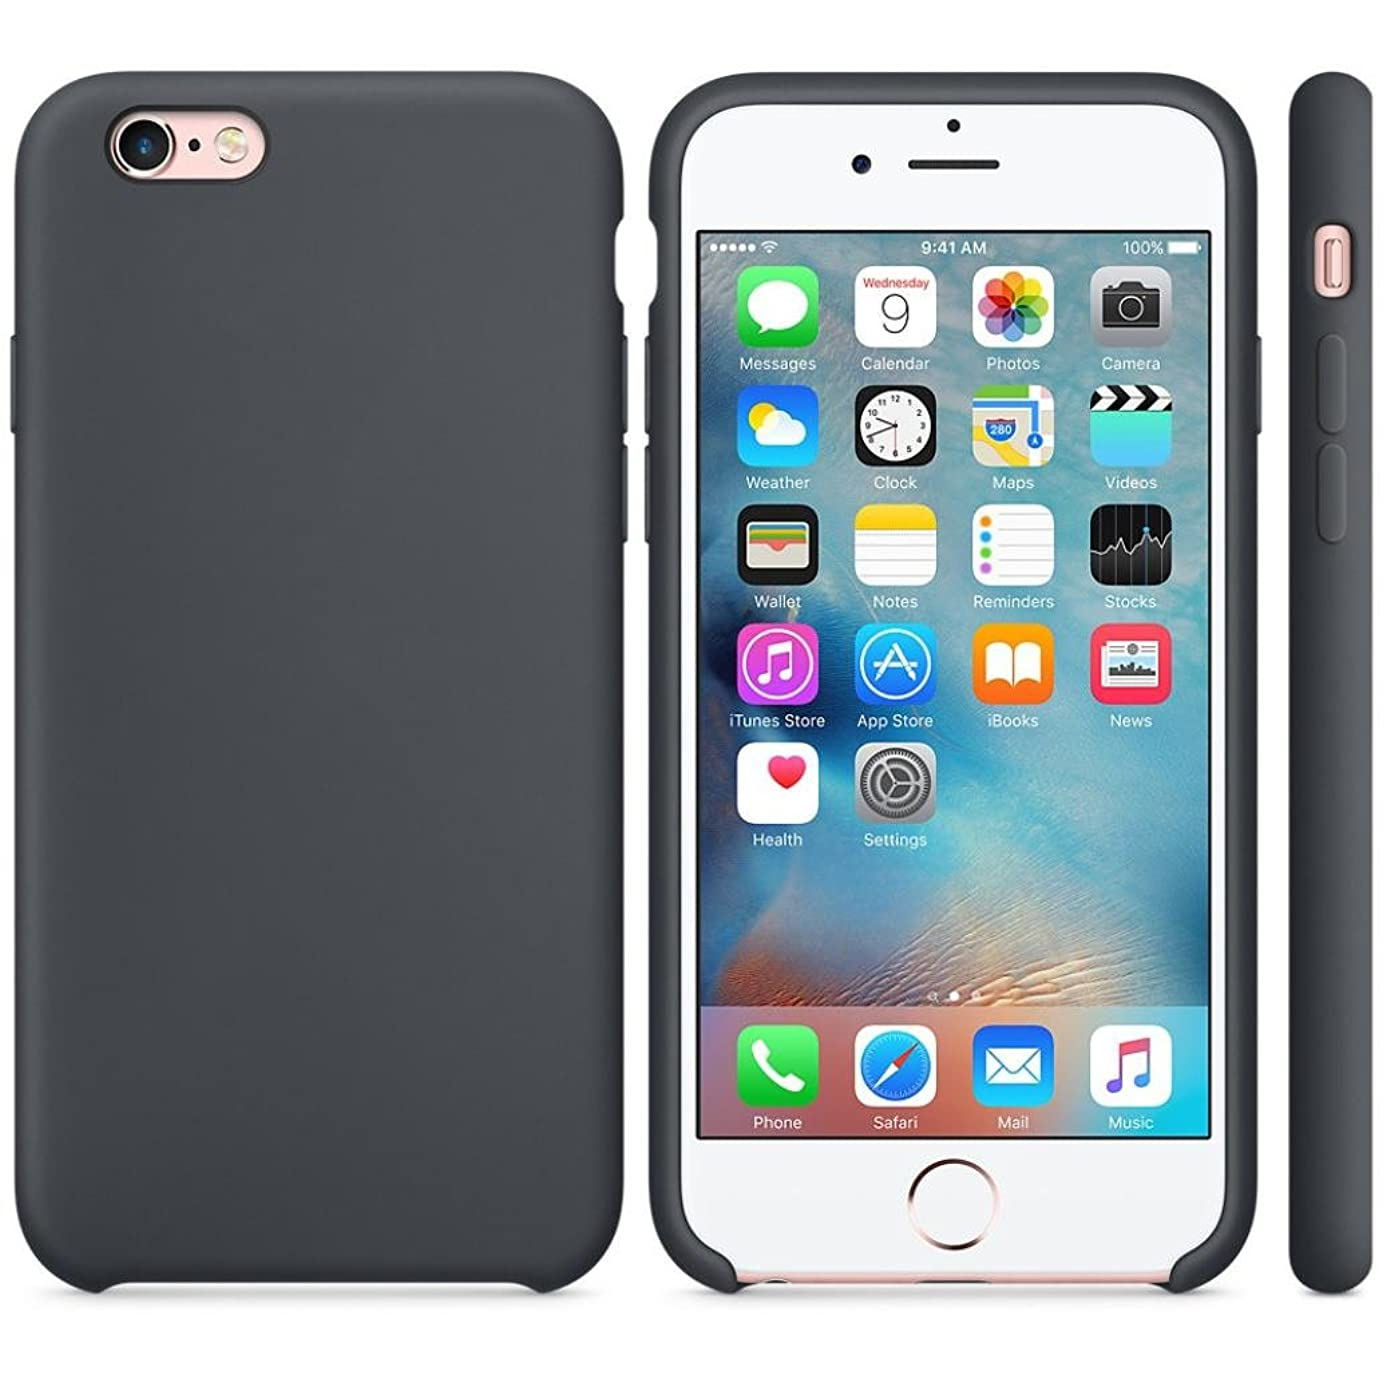 iPhone 6s Case, AutumnFall Fashion Ultra-thin Silicone Case Cover Skin For iPhone 6S/ 6 4.7inch